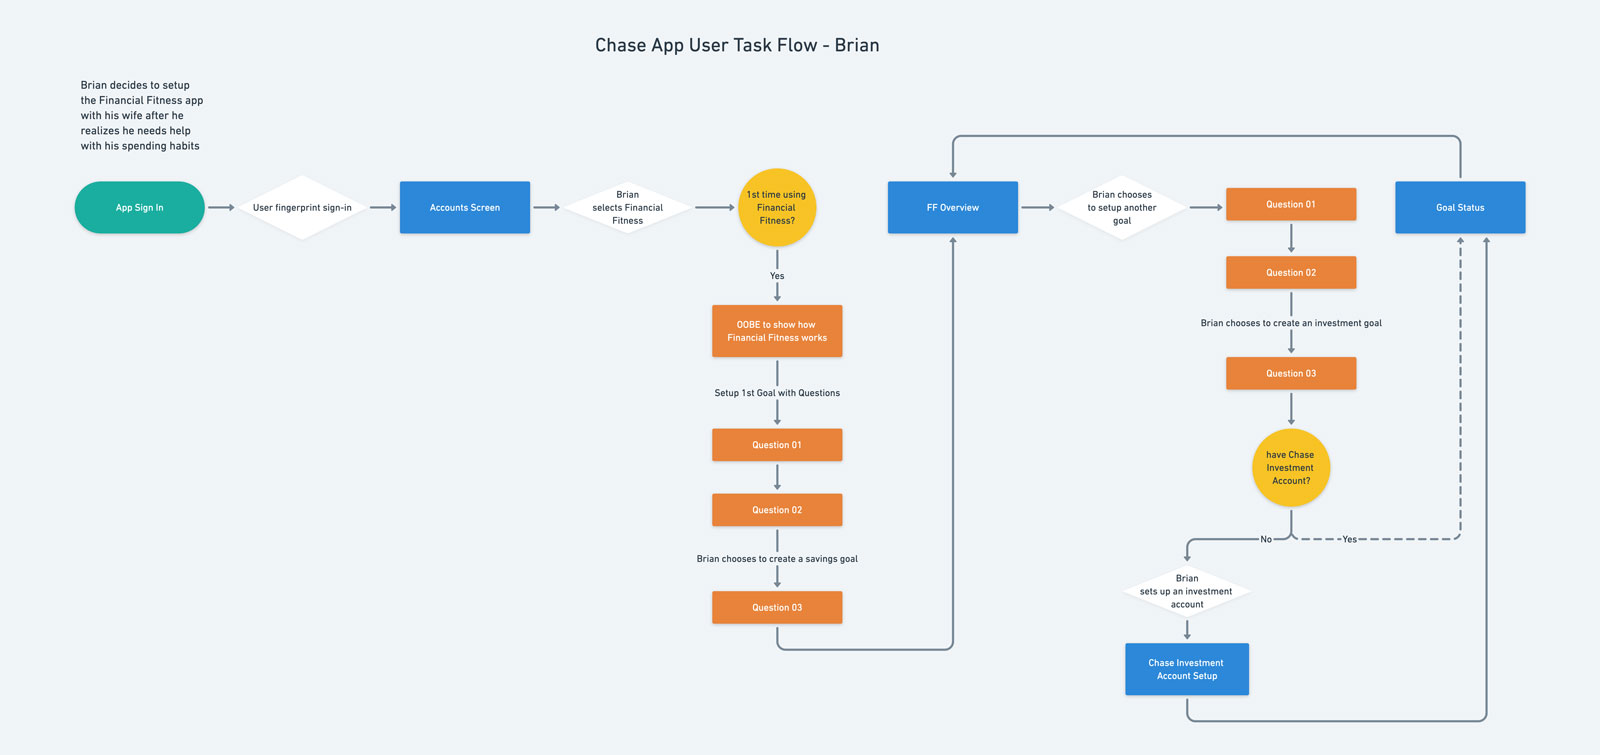 Chase User Flow - Brian